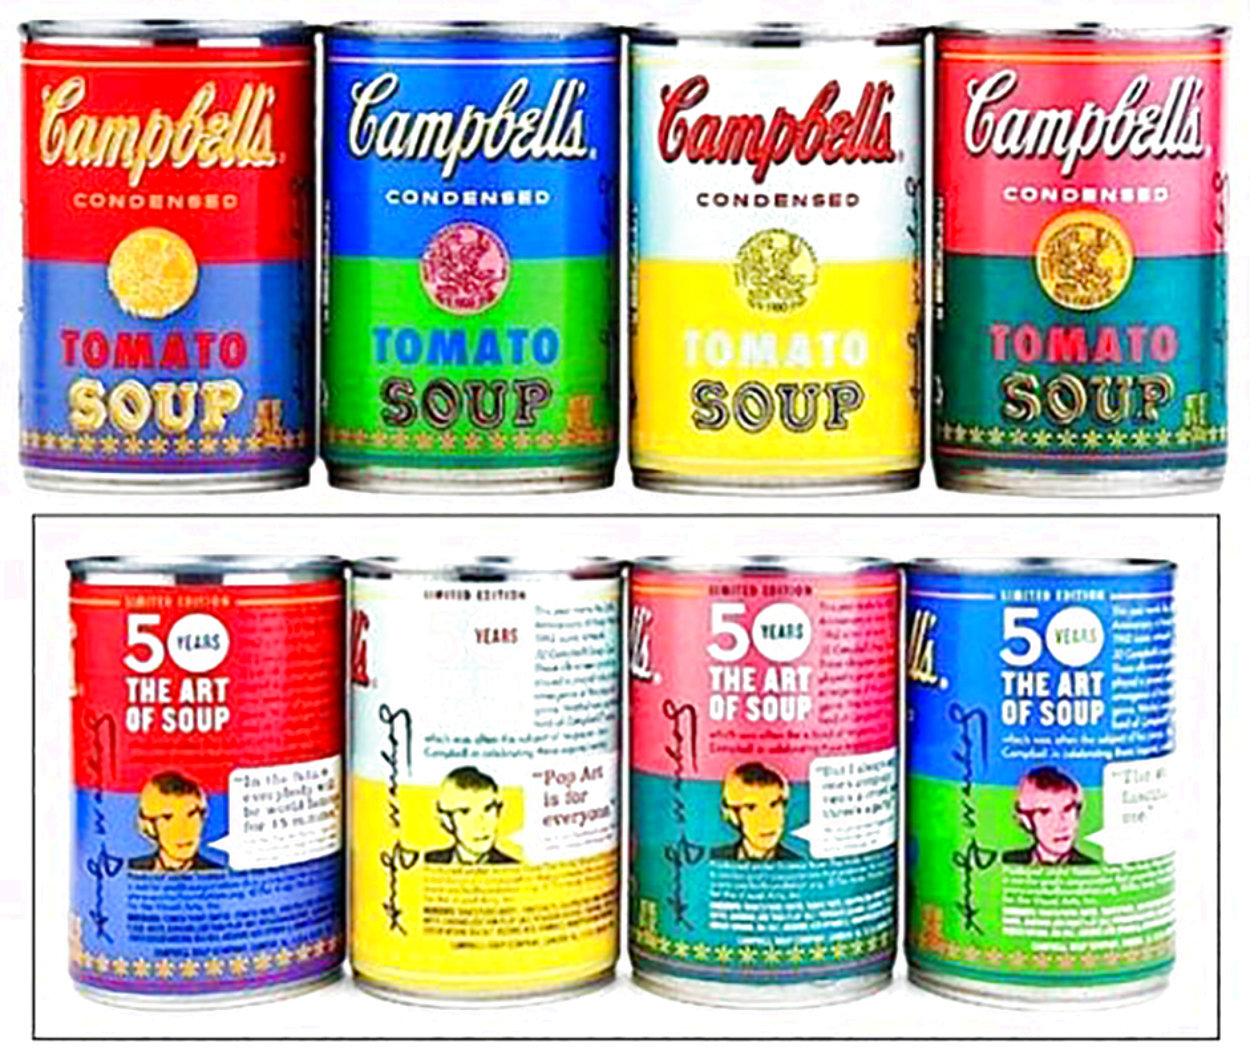 50th Anniversary 4 Campbell's Soup Can 2004 Limited Edition Print by Andy Warhol